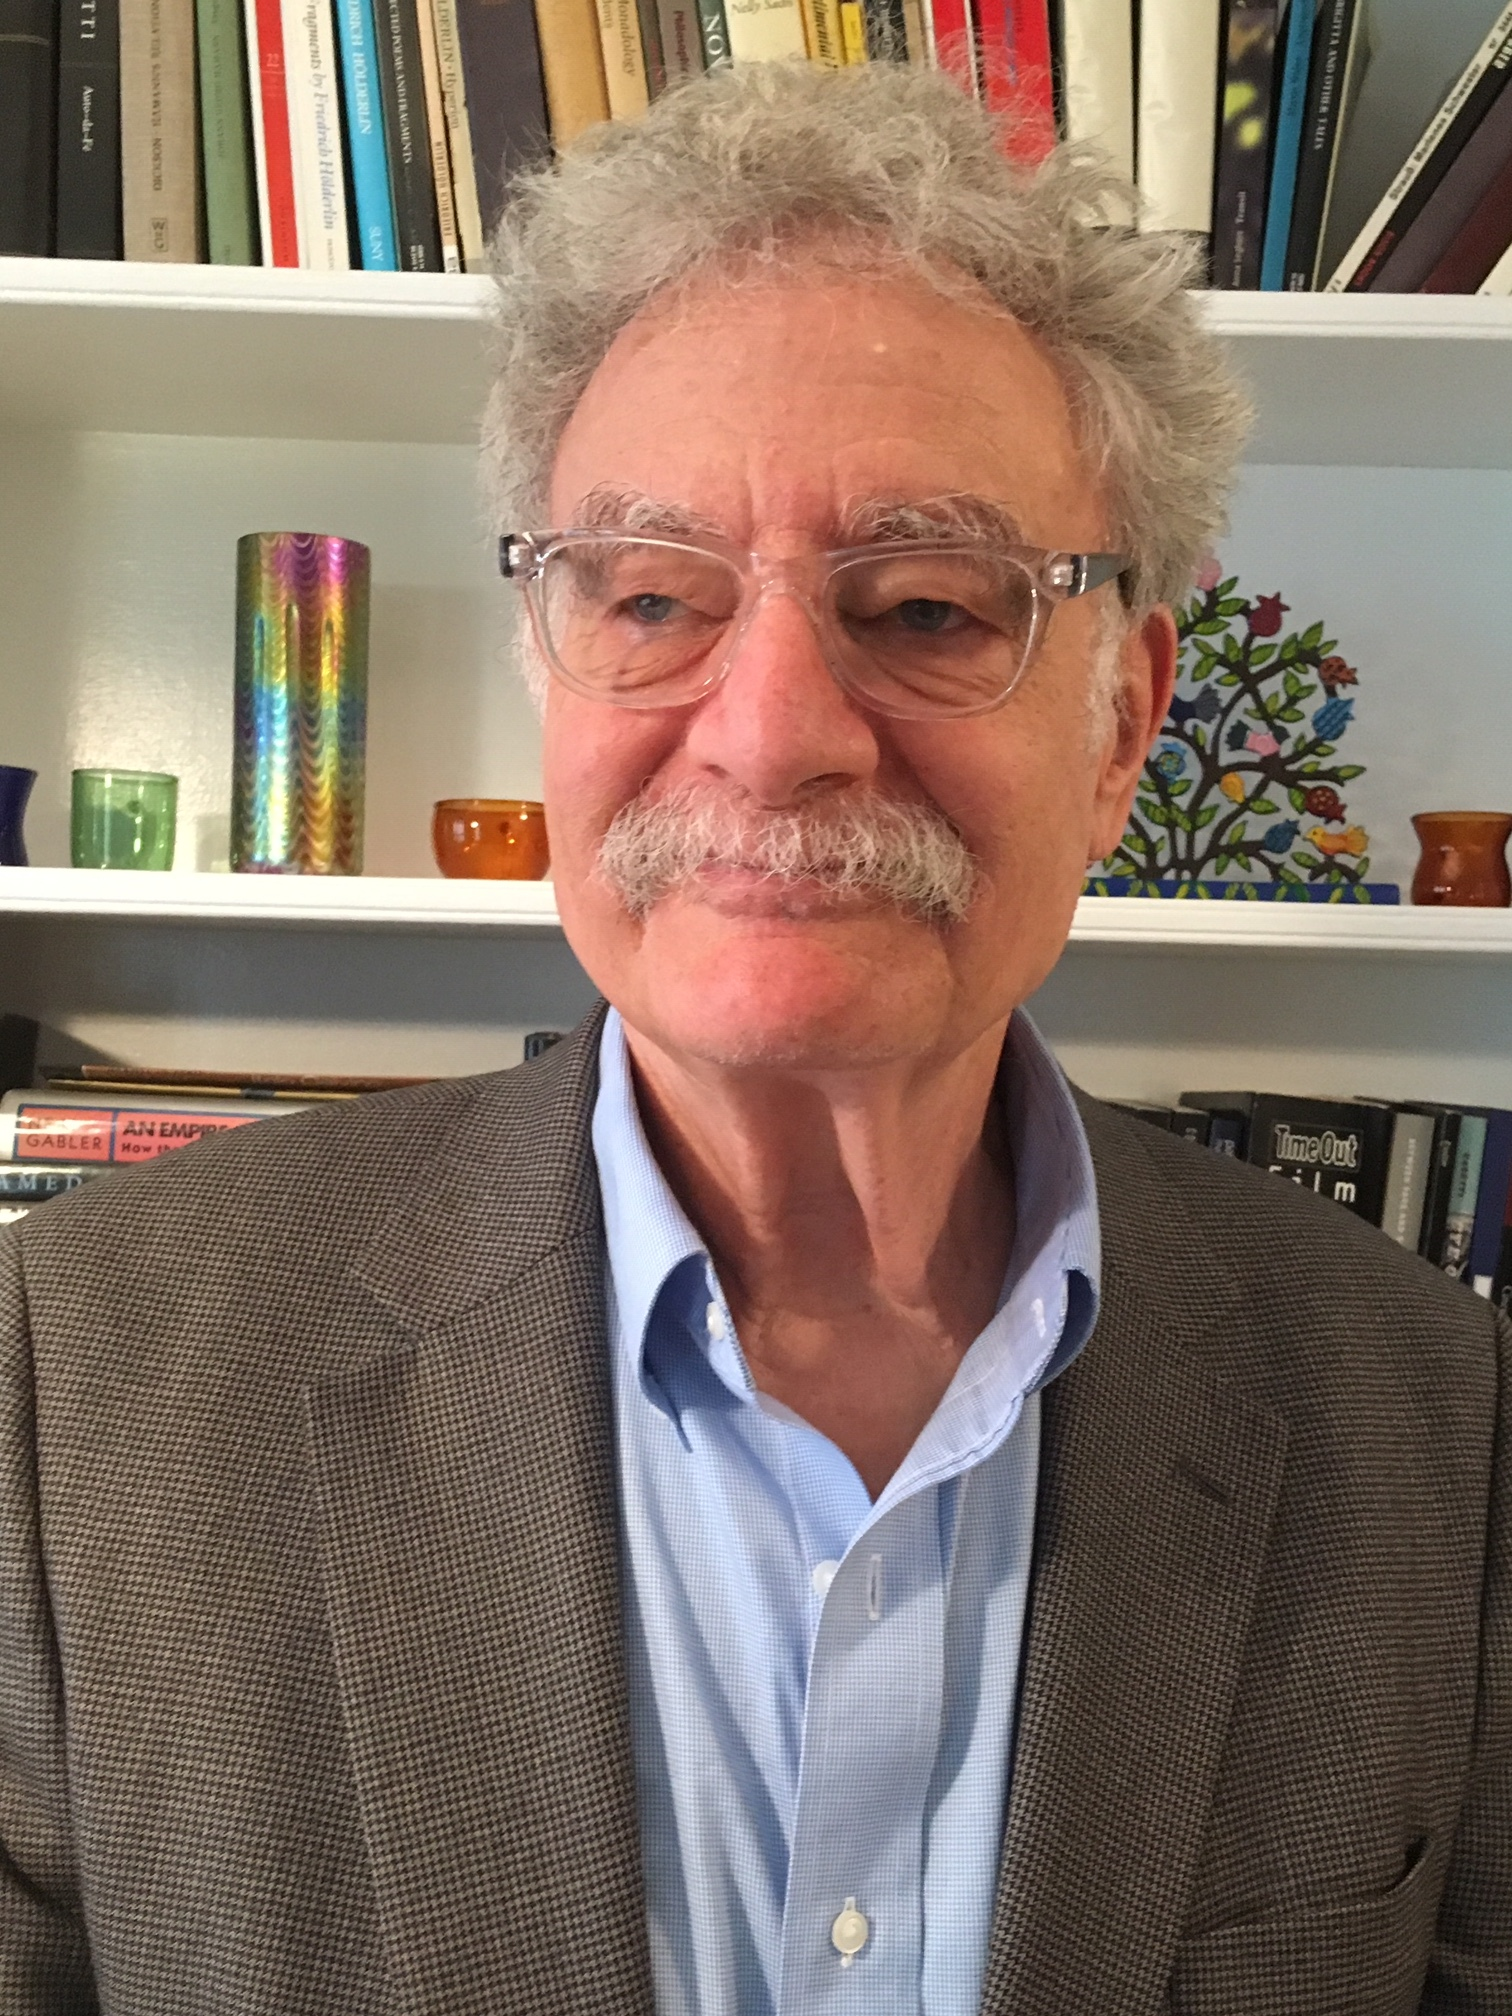 "Henry Sussman received his PhD in Comparative Literature from Johns Hopkins University in 1975 and taught Comparative and German Literatures at universities including Johns Hopkins, SUNY Buffalo, the Hebrew University of Jerusalem, Rutgers, and Yale. At Yale, he evolved a course in German fairy tales out of his interests in critical theory, philosophy, psychoanalysis and cybernetics.      ""Wisdom in the End: Folktales and Narrative Technique in End-of-Life Palliation""      by Sussman and co-author Jeffrey Newman appears in the Spring 2019 Intima: A Journal of Narrative Medicine."